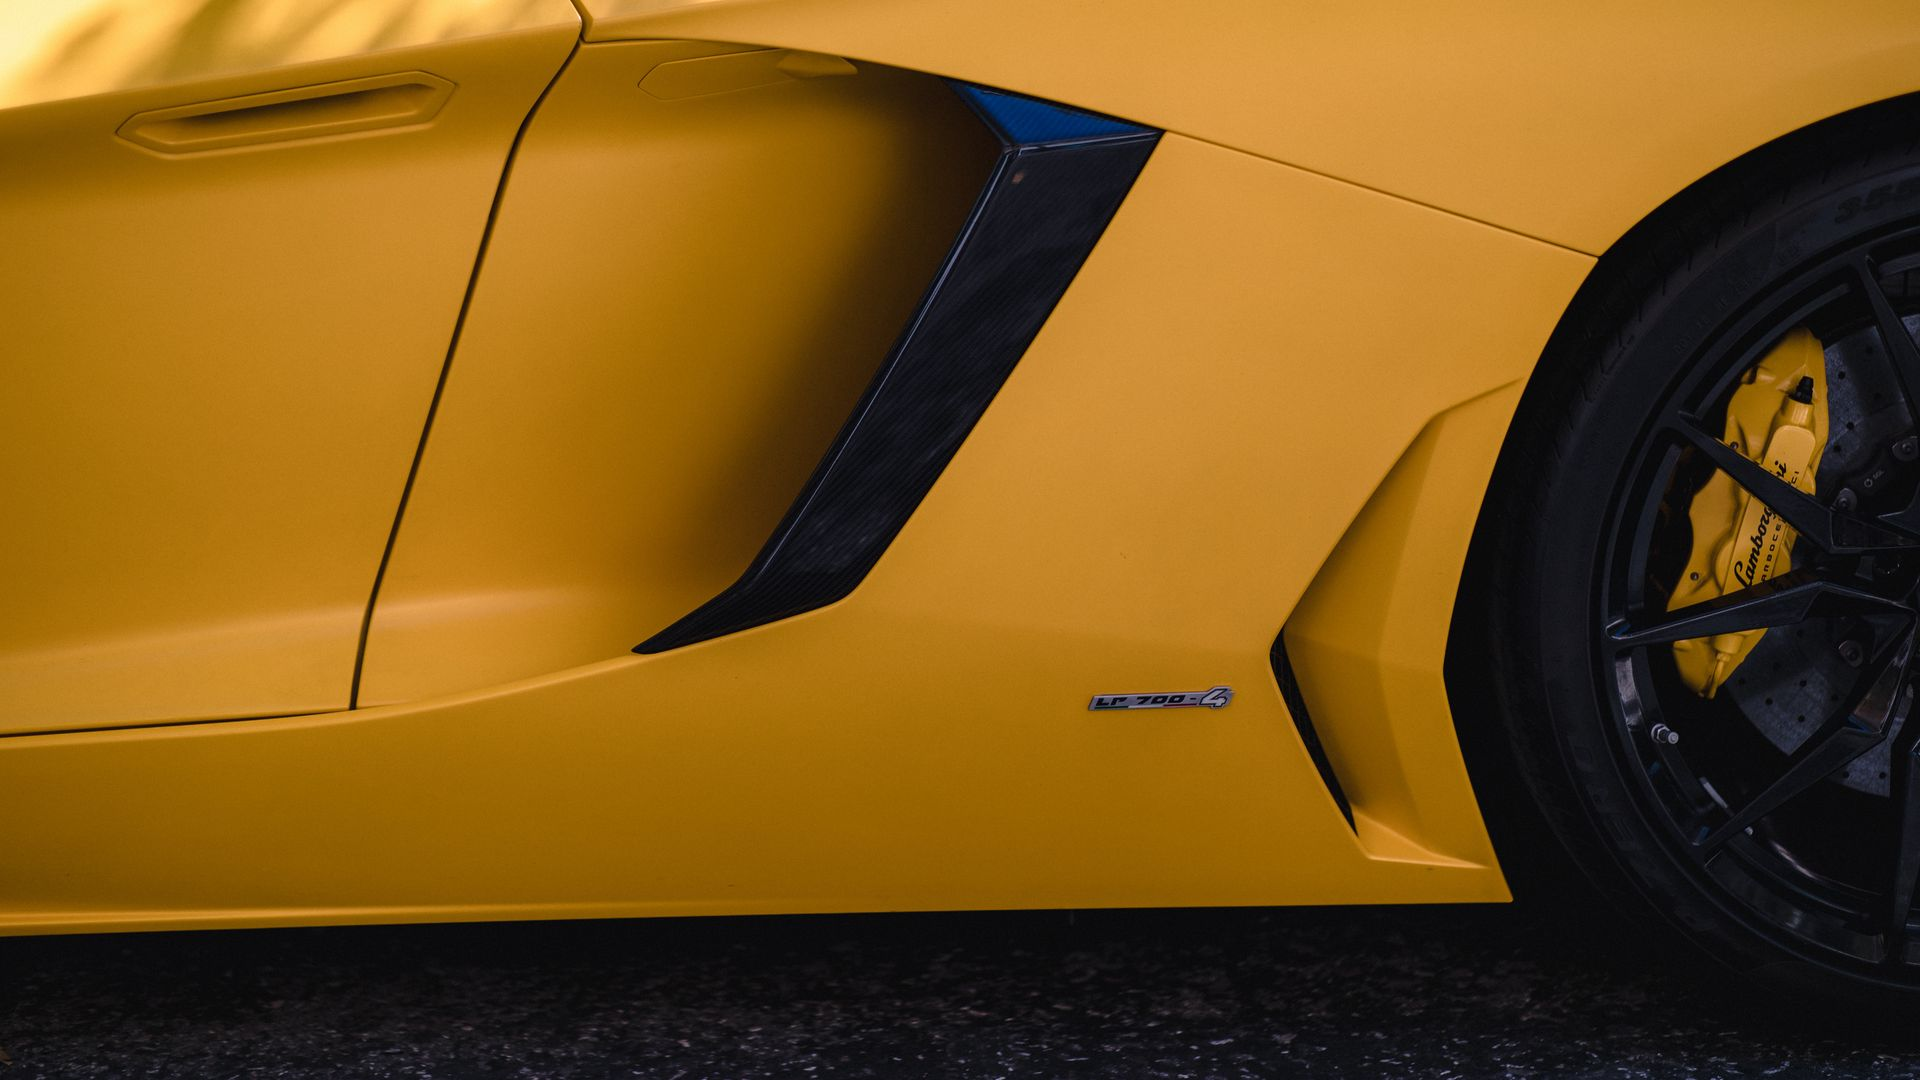 The Wallpapers Related to Lamborghini, Car, Wheel